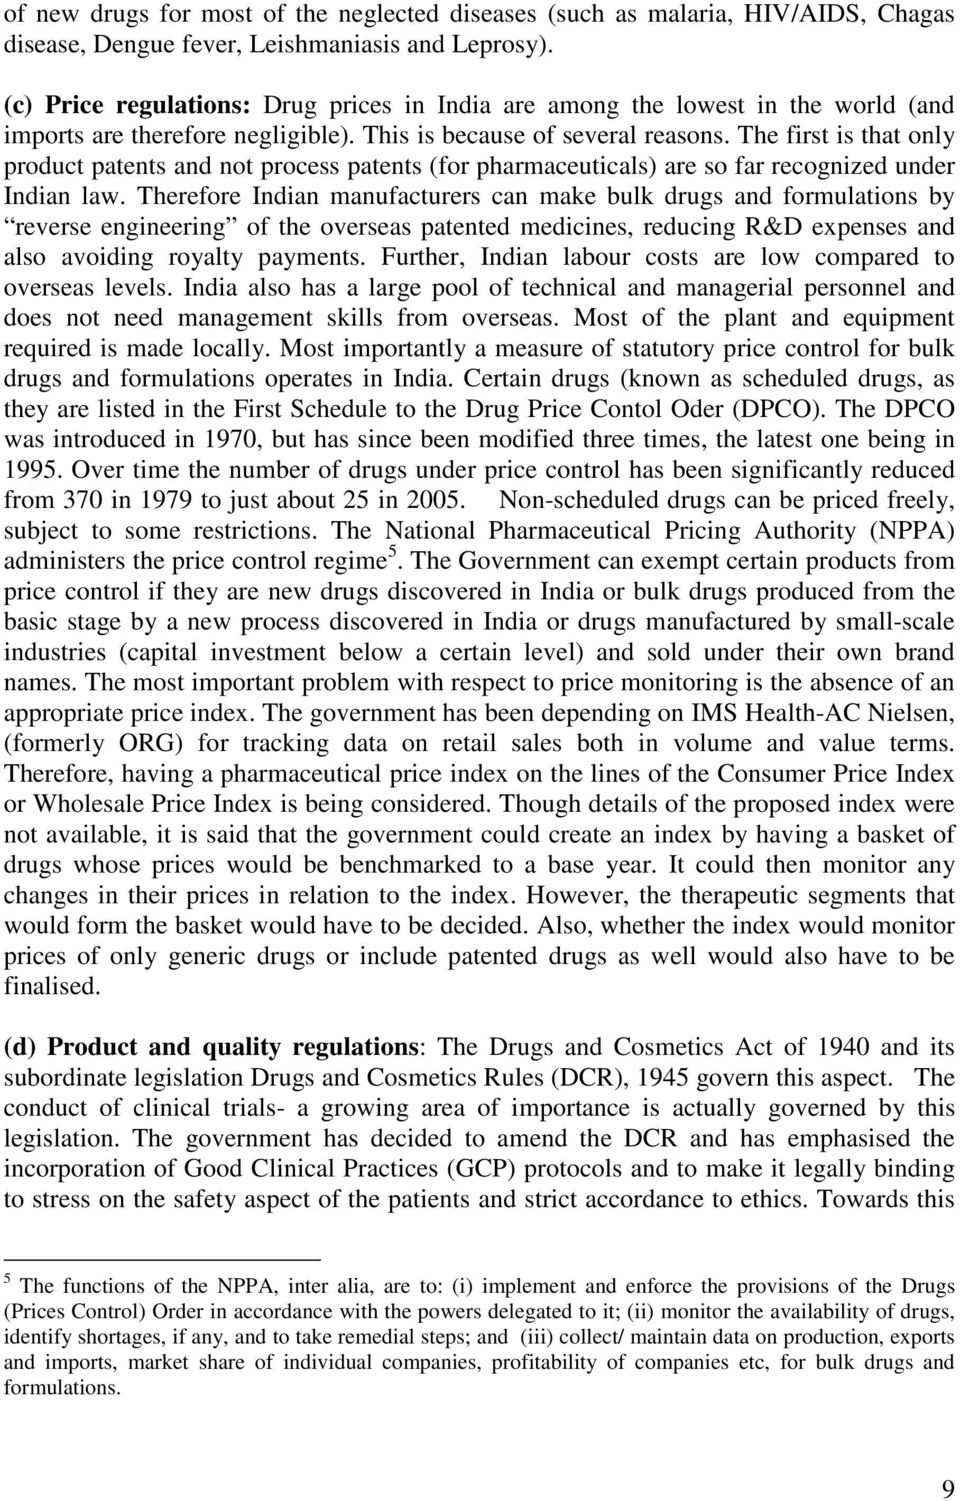 The first is that only product patents and not process patents (for pharmaceuticals) are so far recognized under Indian law.